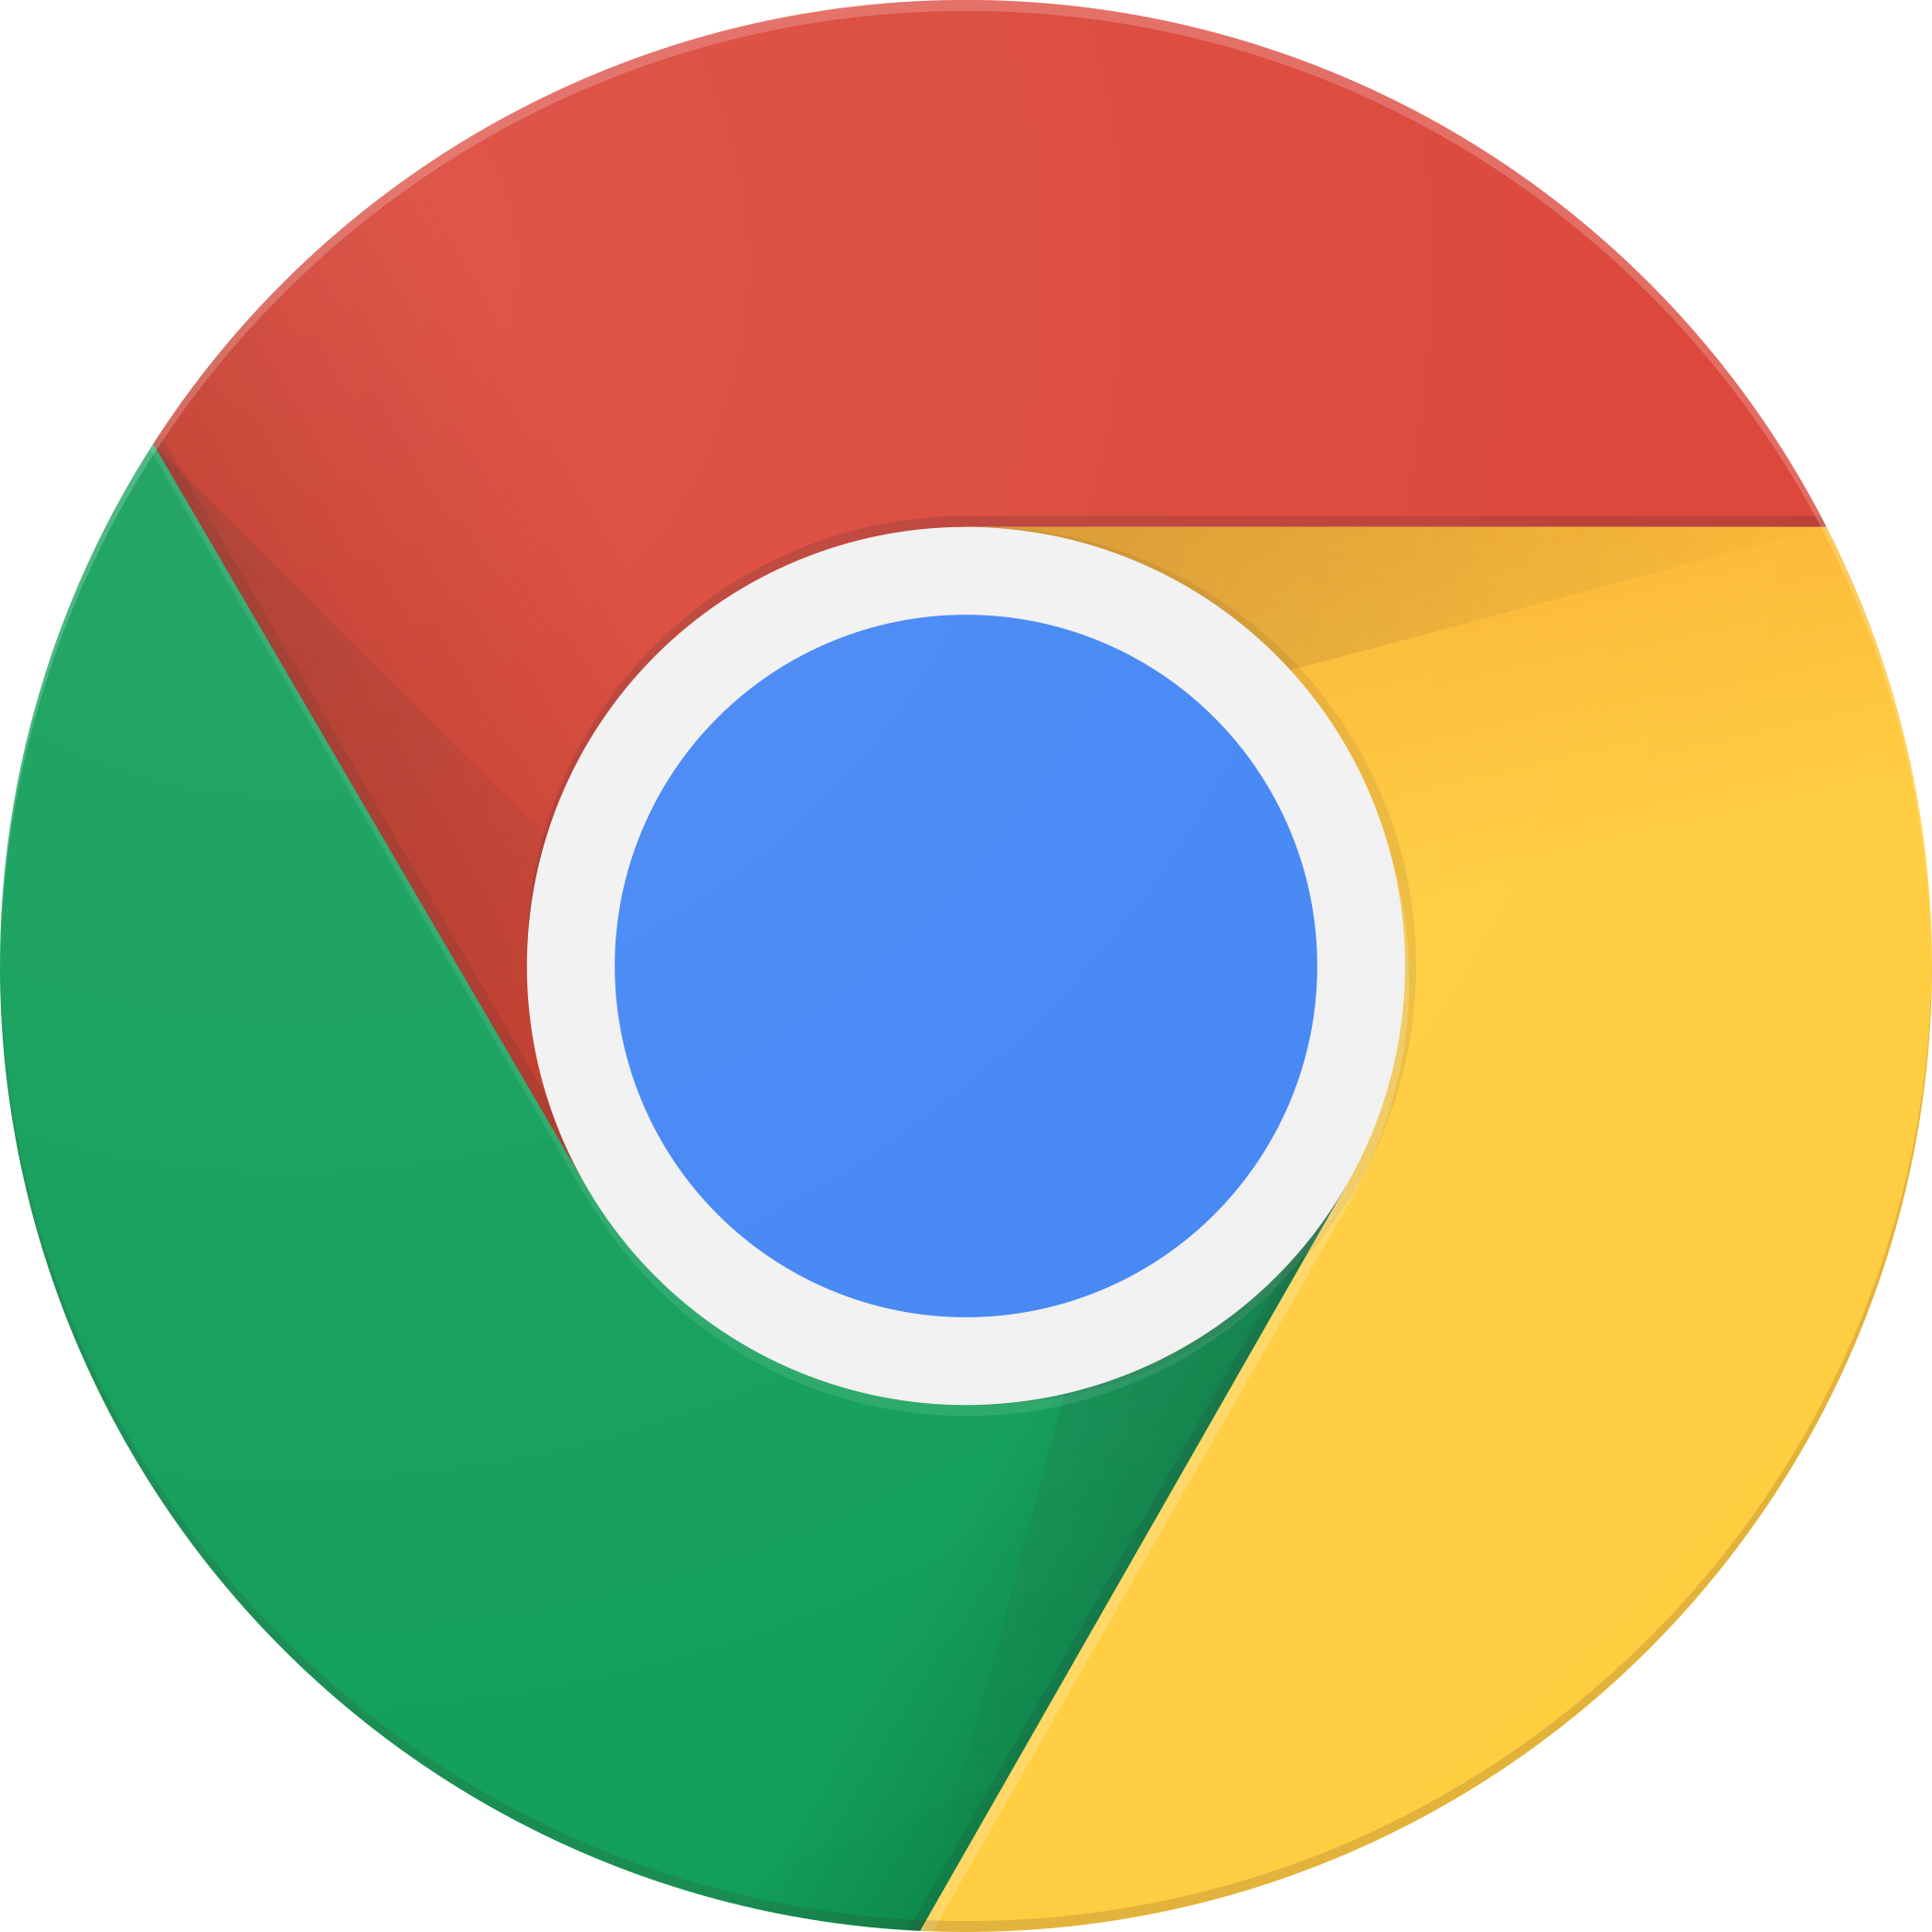 google chrome logo 2 - Google Chrome Logo